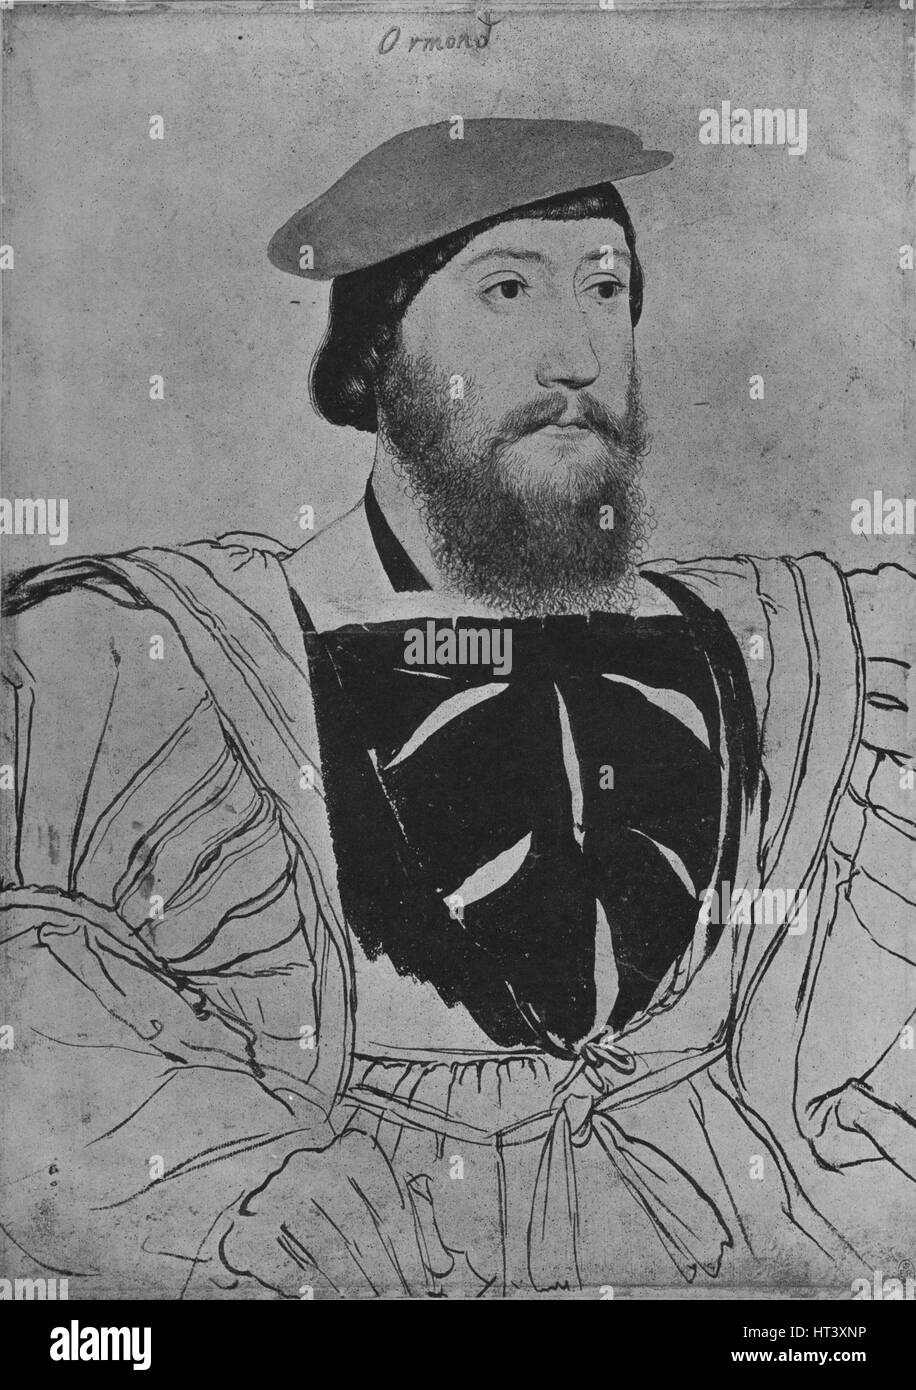 'James Butler', c1537 (1945). Artist: Hans Holbein the Younger. - Stock Image